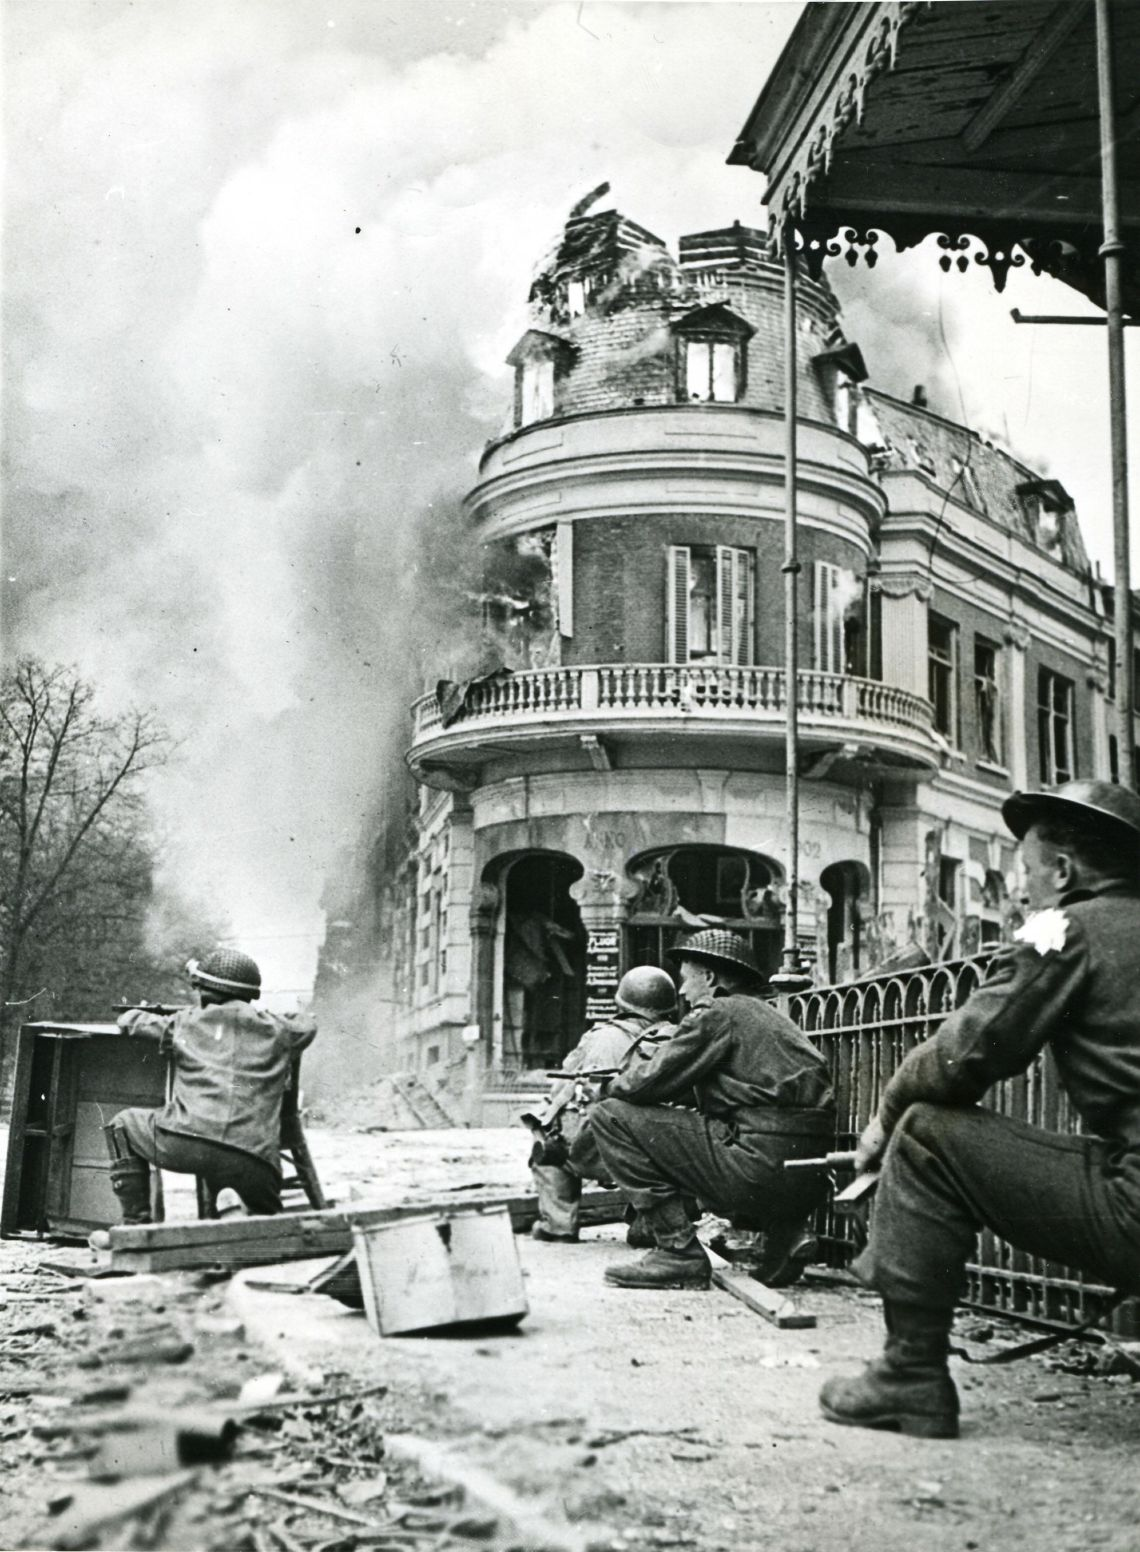 British troops at the Battle of Arnhem